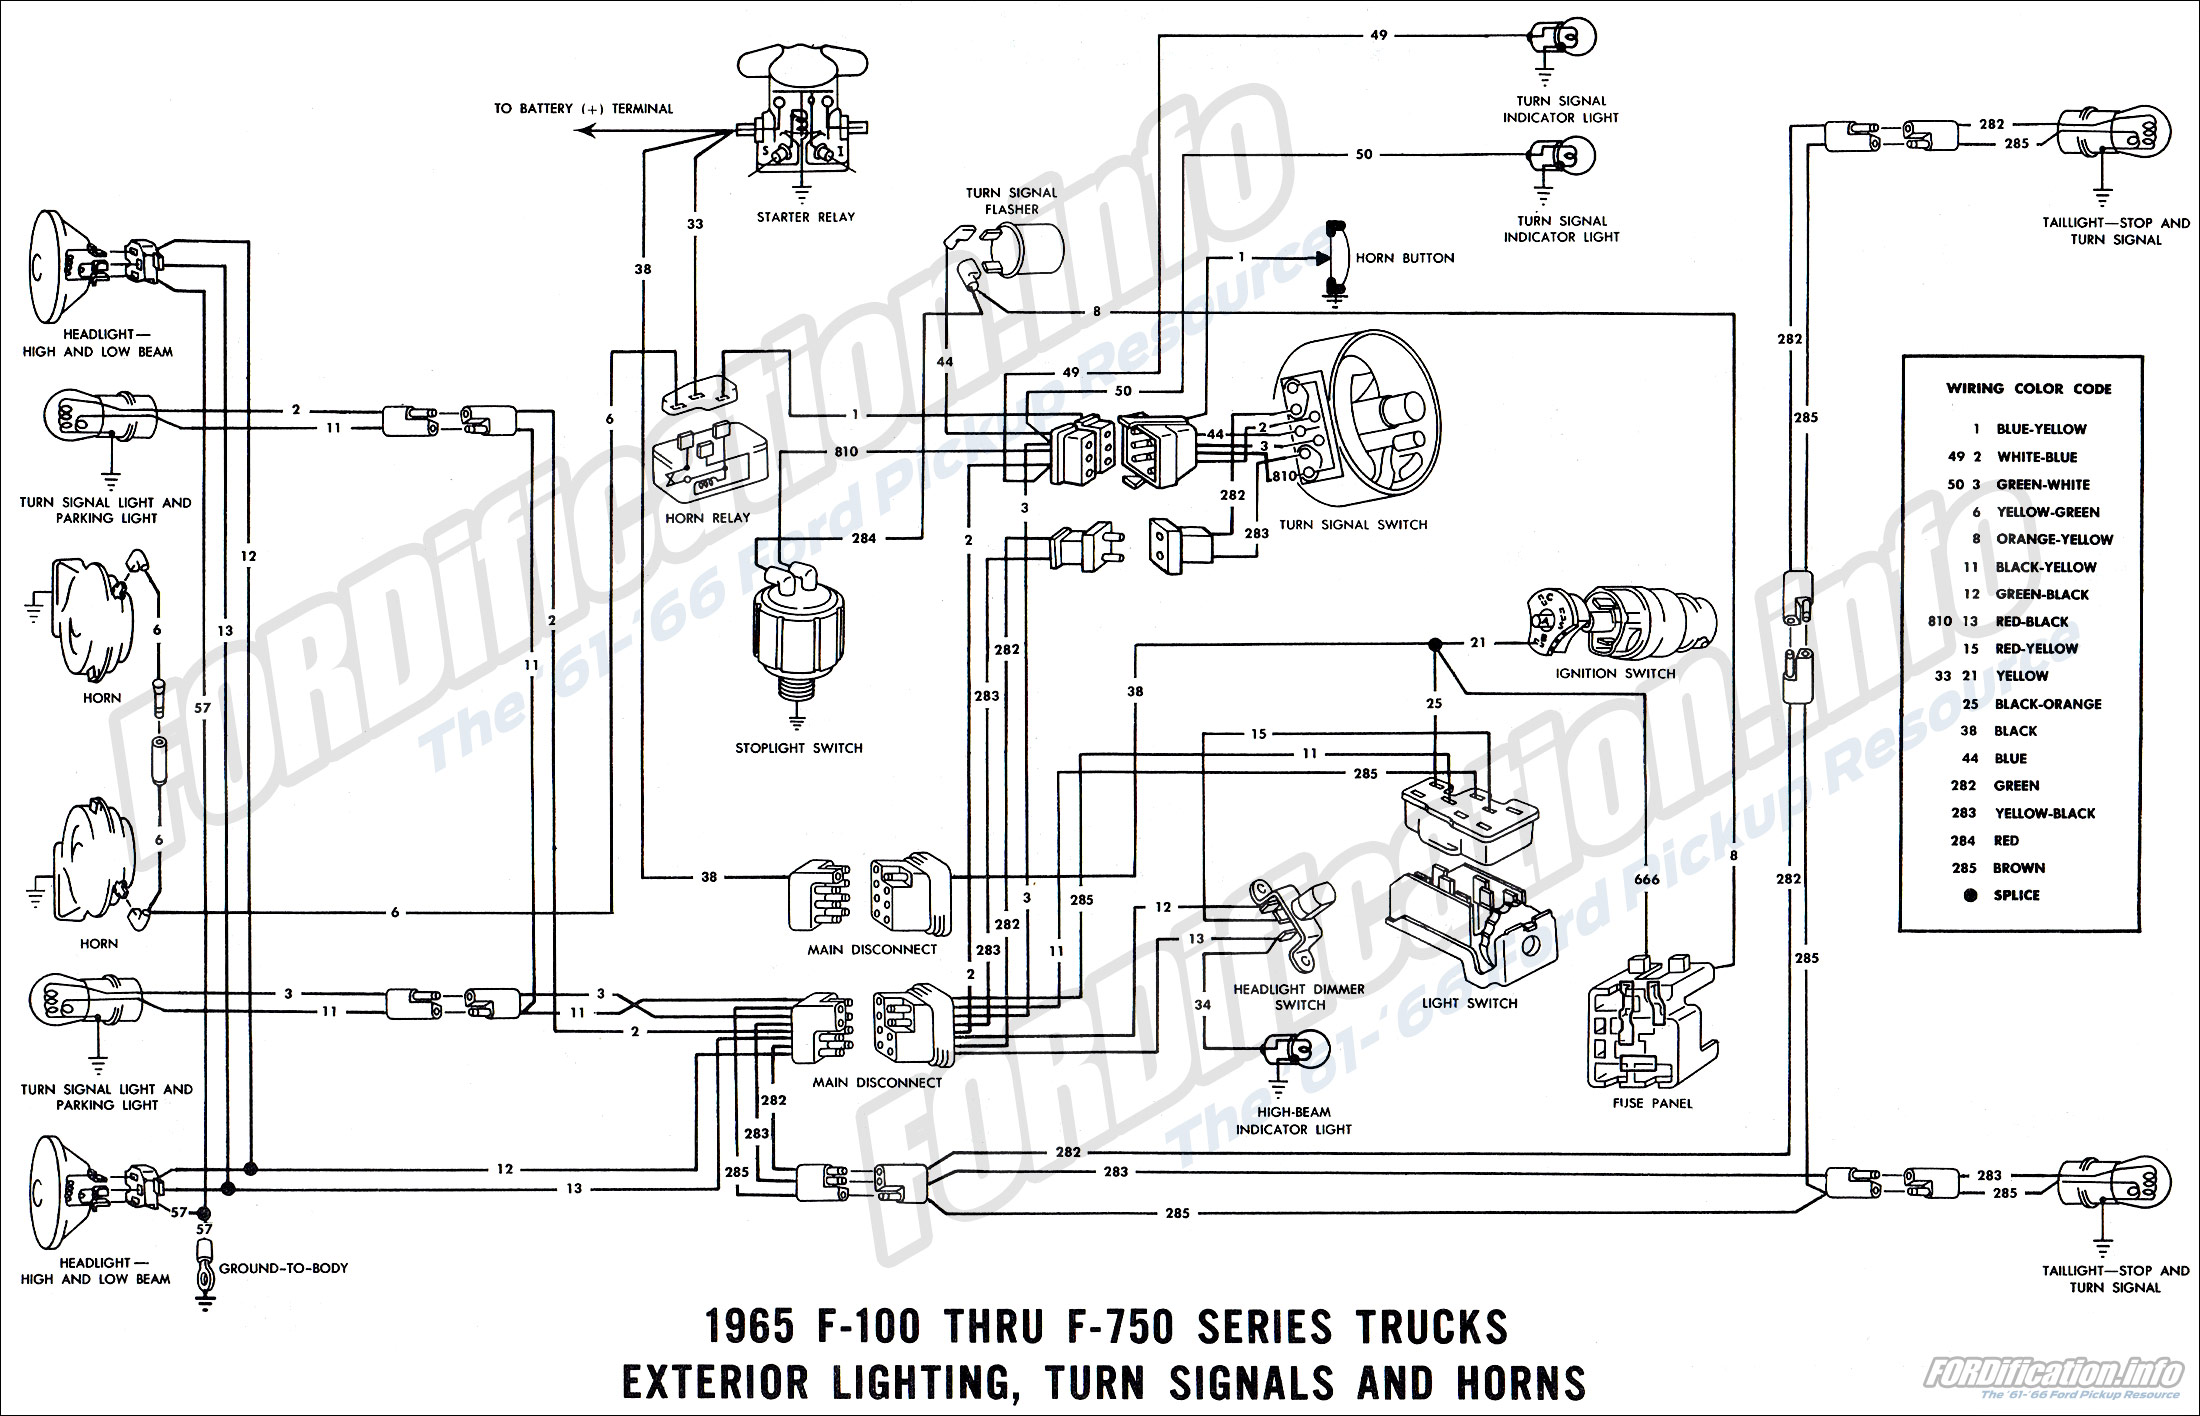 1965 ford truck wiring diagrams fordification info the '61 '66 1966 ford pick up wiring diagram 1965 f 100 thru f 750 series trucks exterior lighting, turn signals and horns